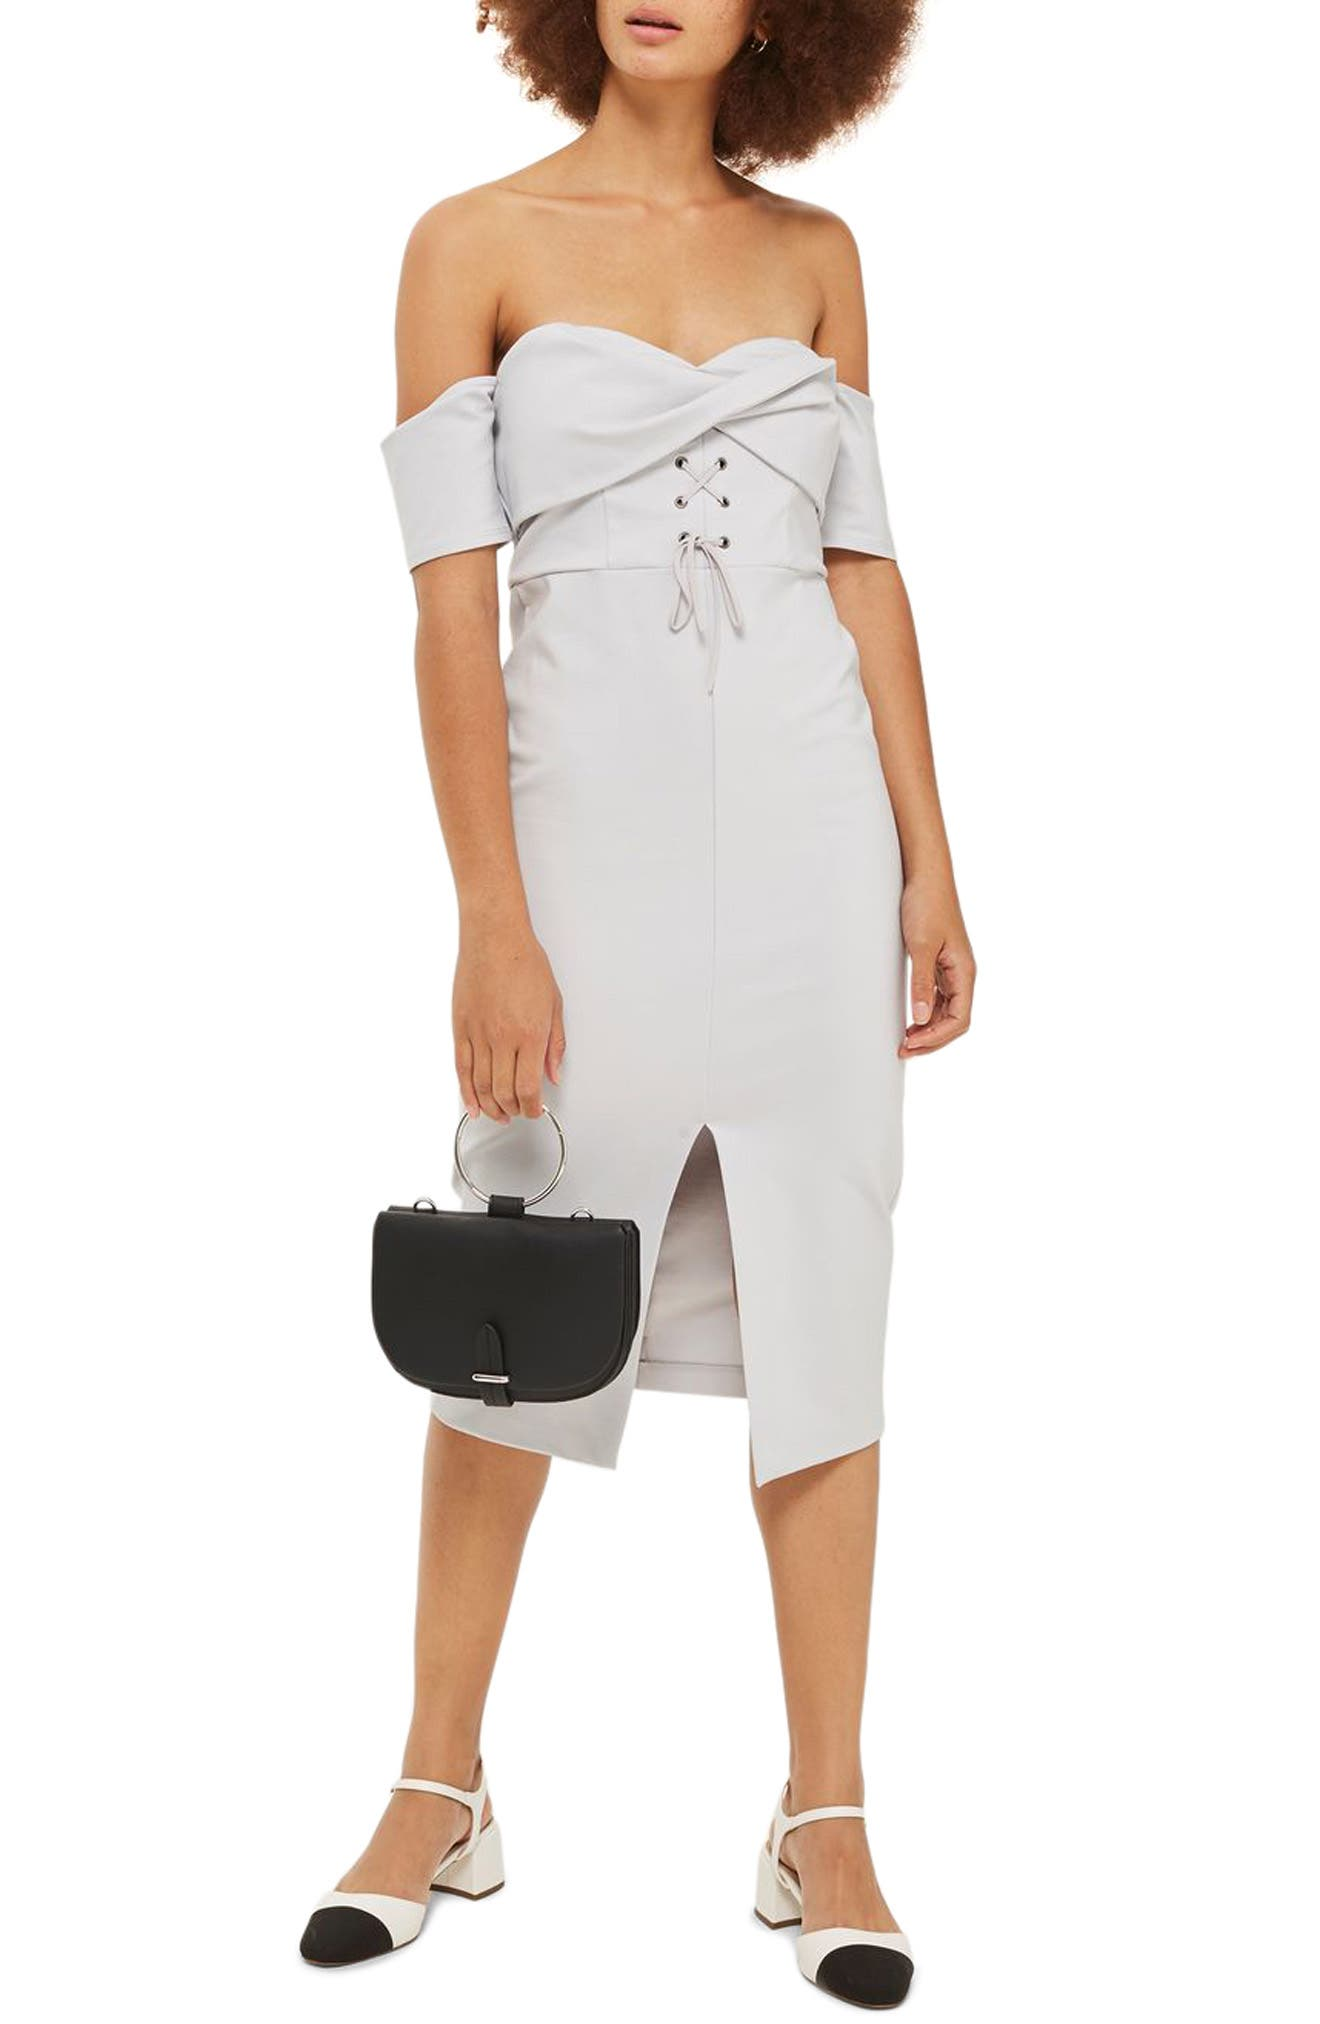 Topshop Twist Lace-Up Off the Shoulder Dress